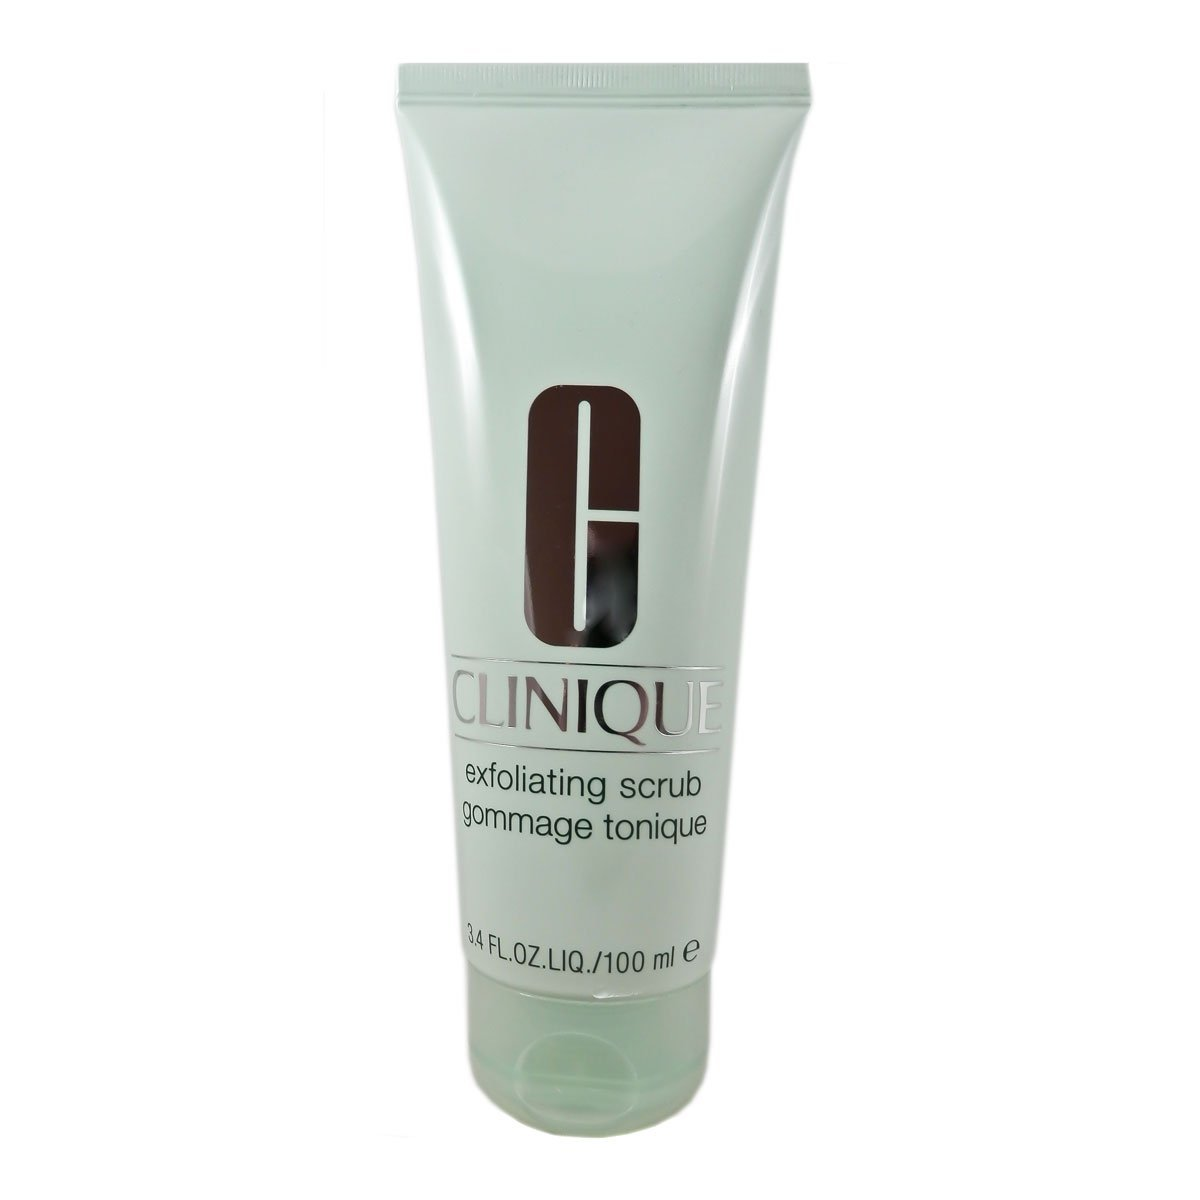 Clinique Exfoliating Scrub for Unisex, 3.3 Ounce PerfumeWorldWide Inc. 0020714002527 14243_-100ml